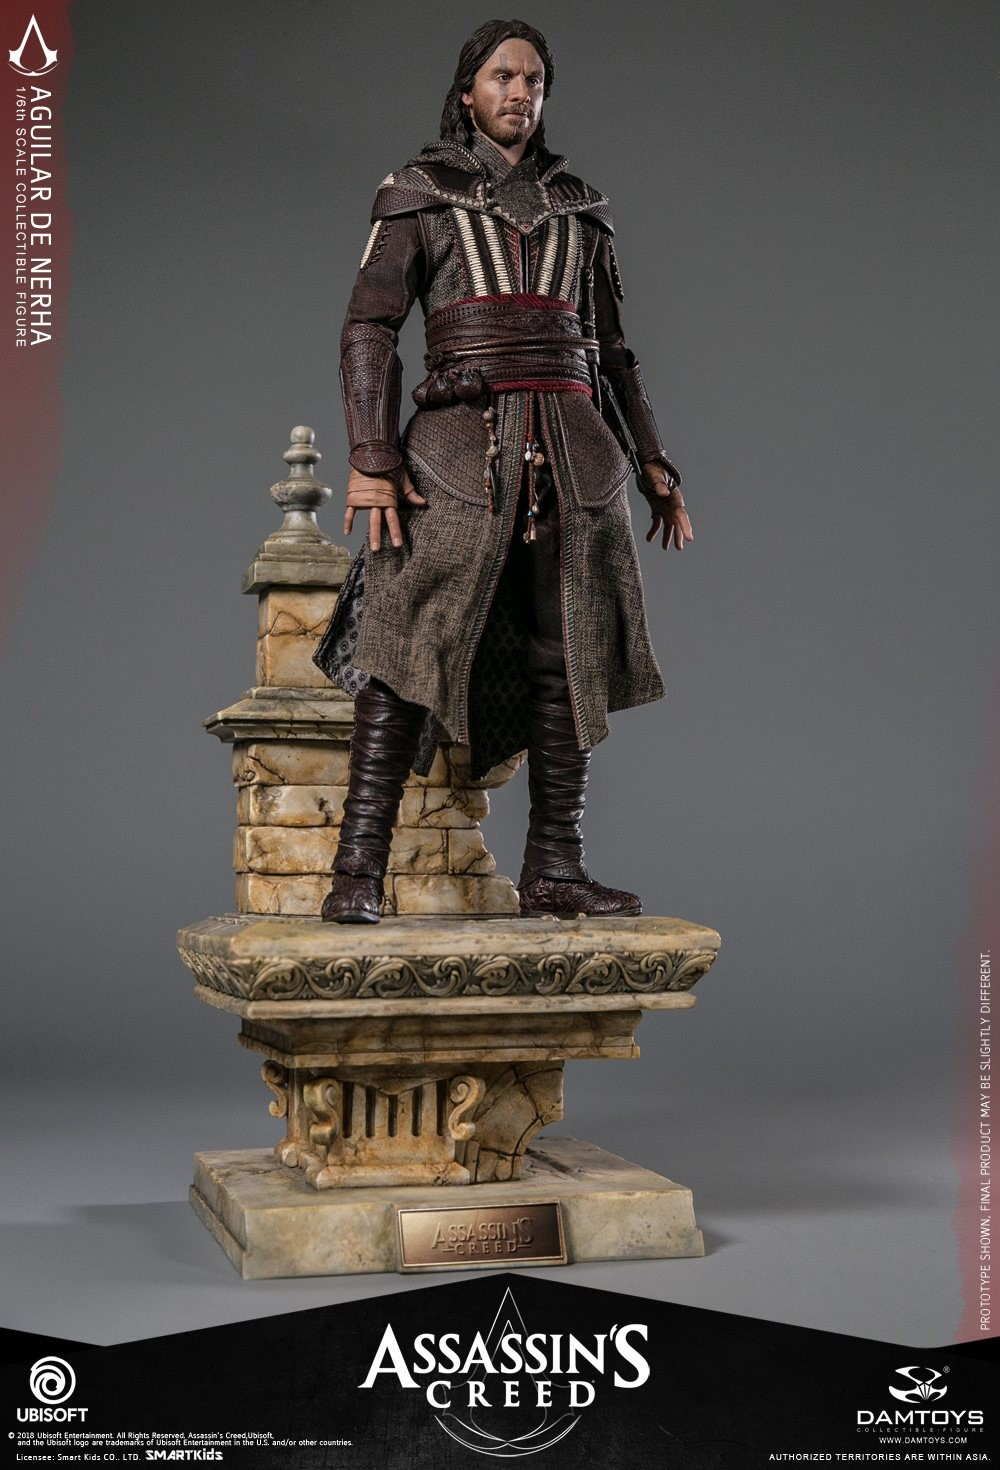 La figura de Assassin's Creed más realista